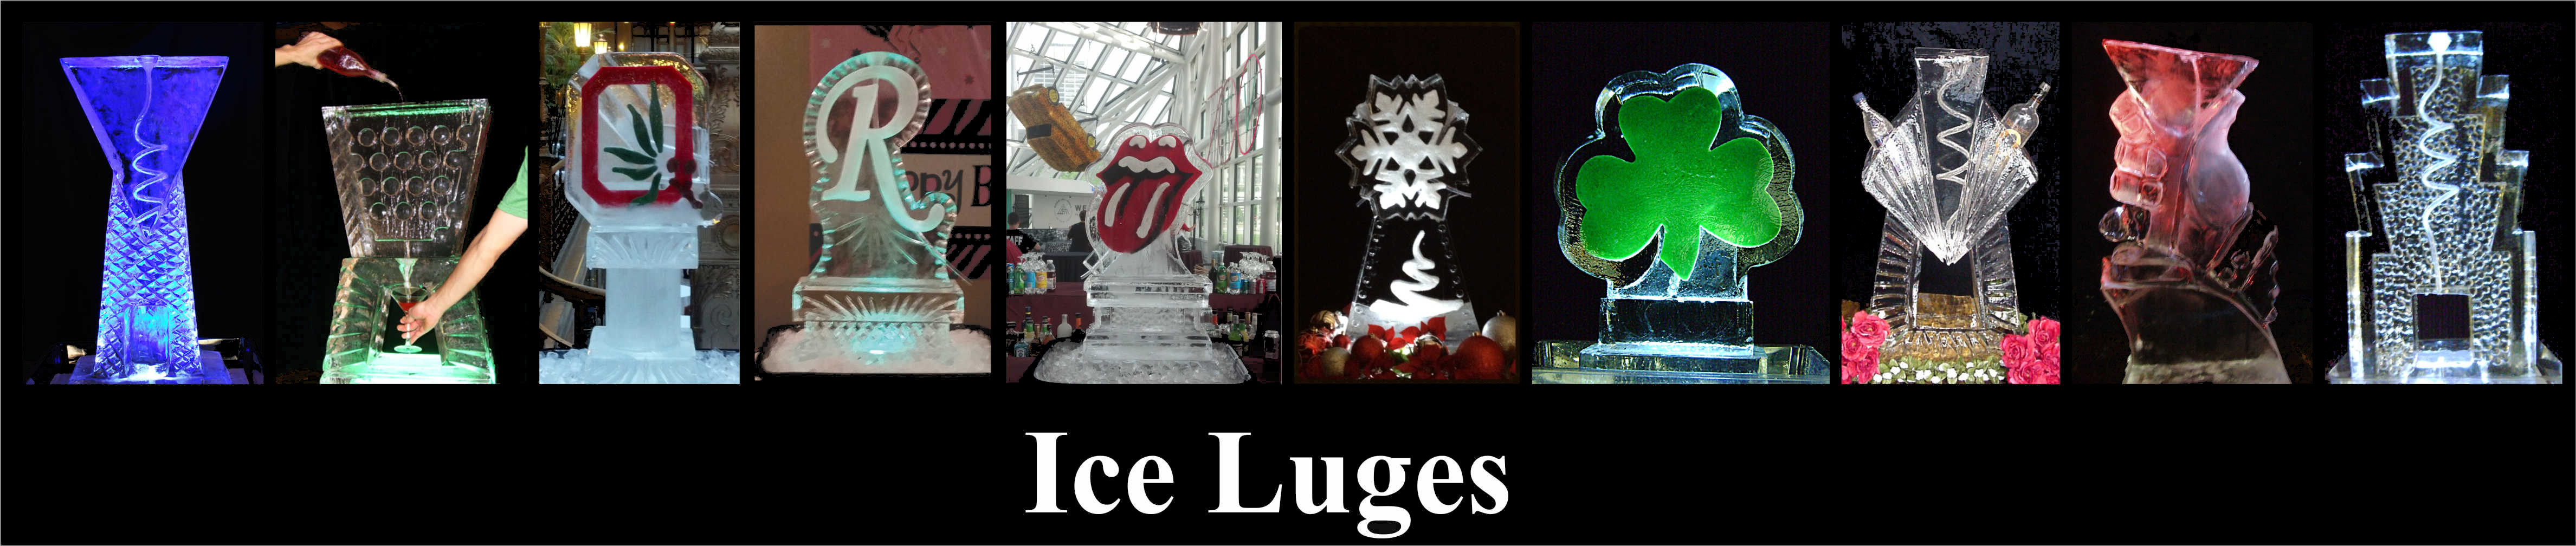 Ice Luges